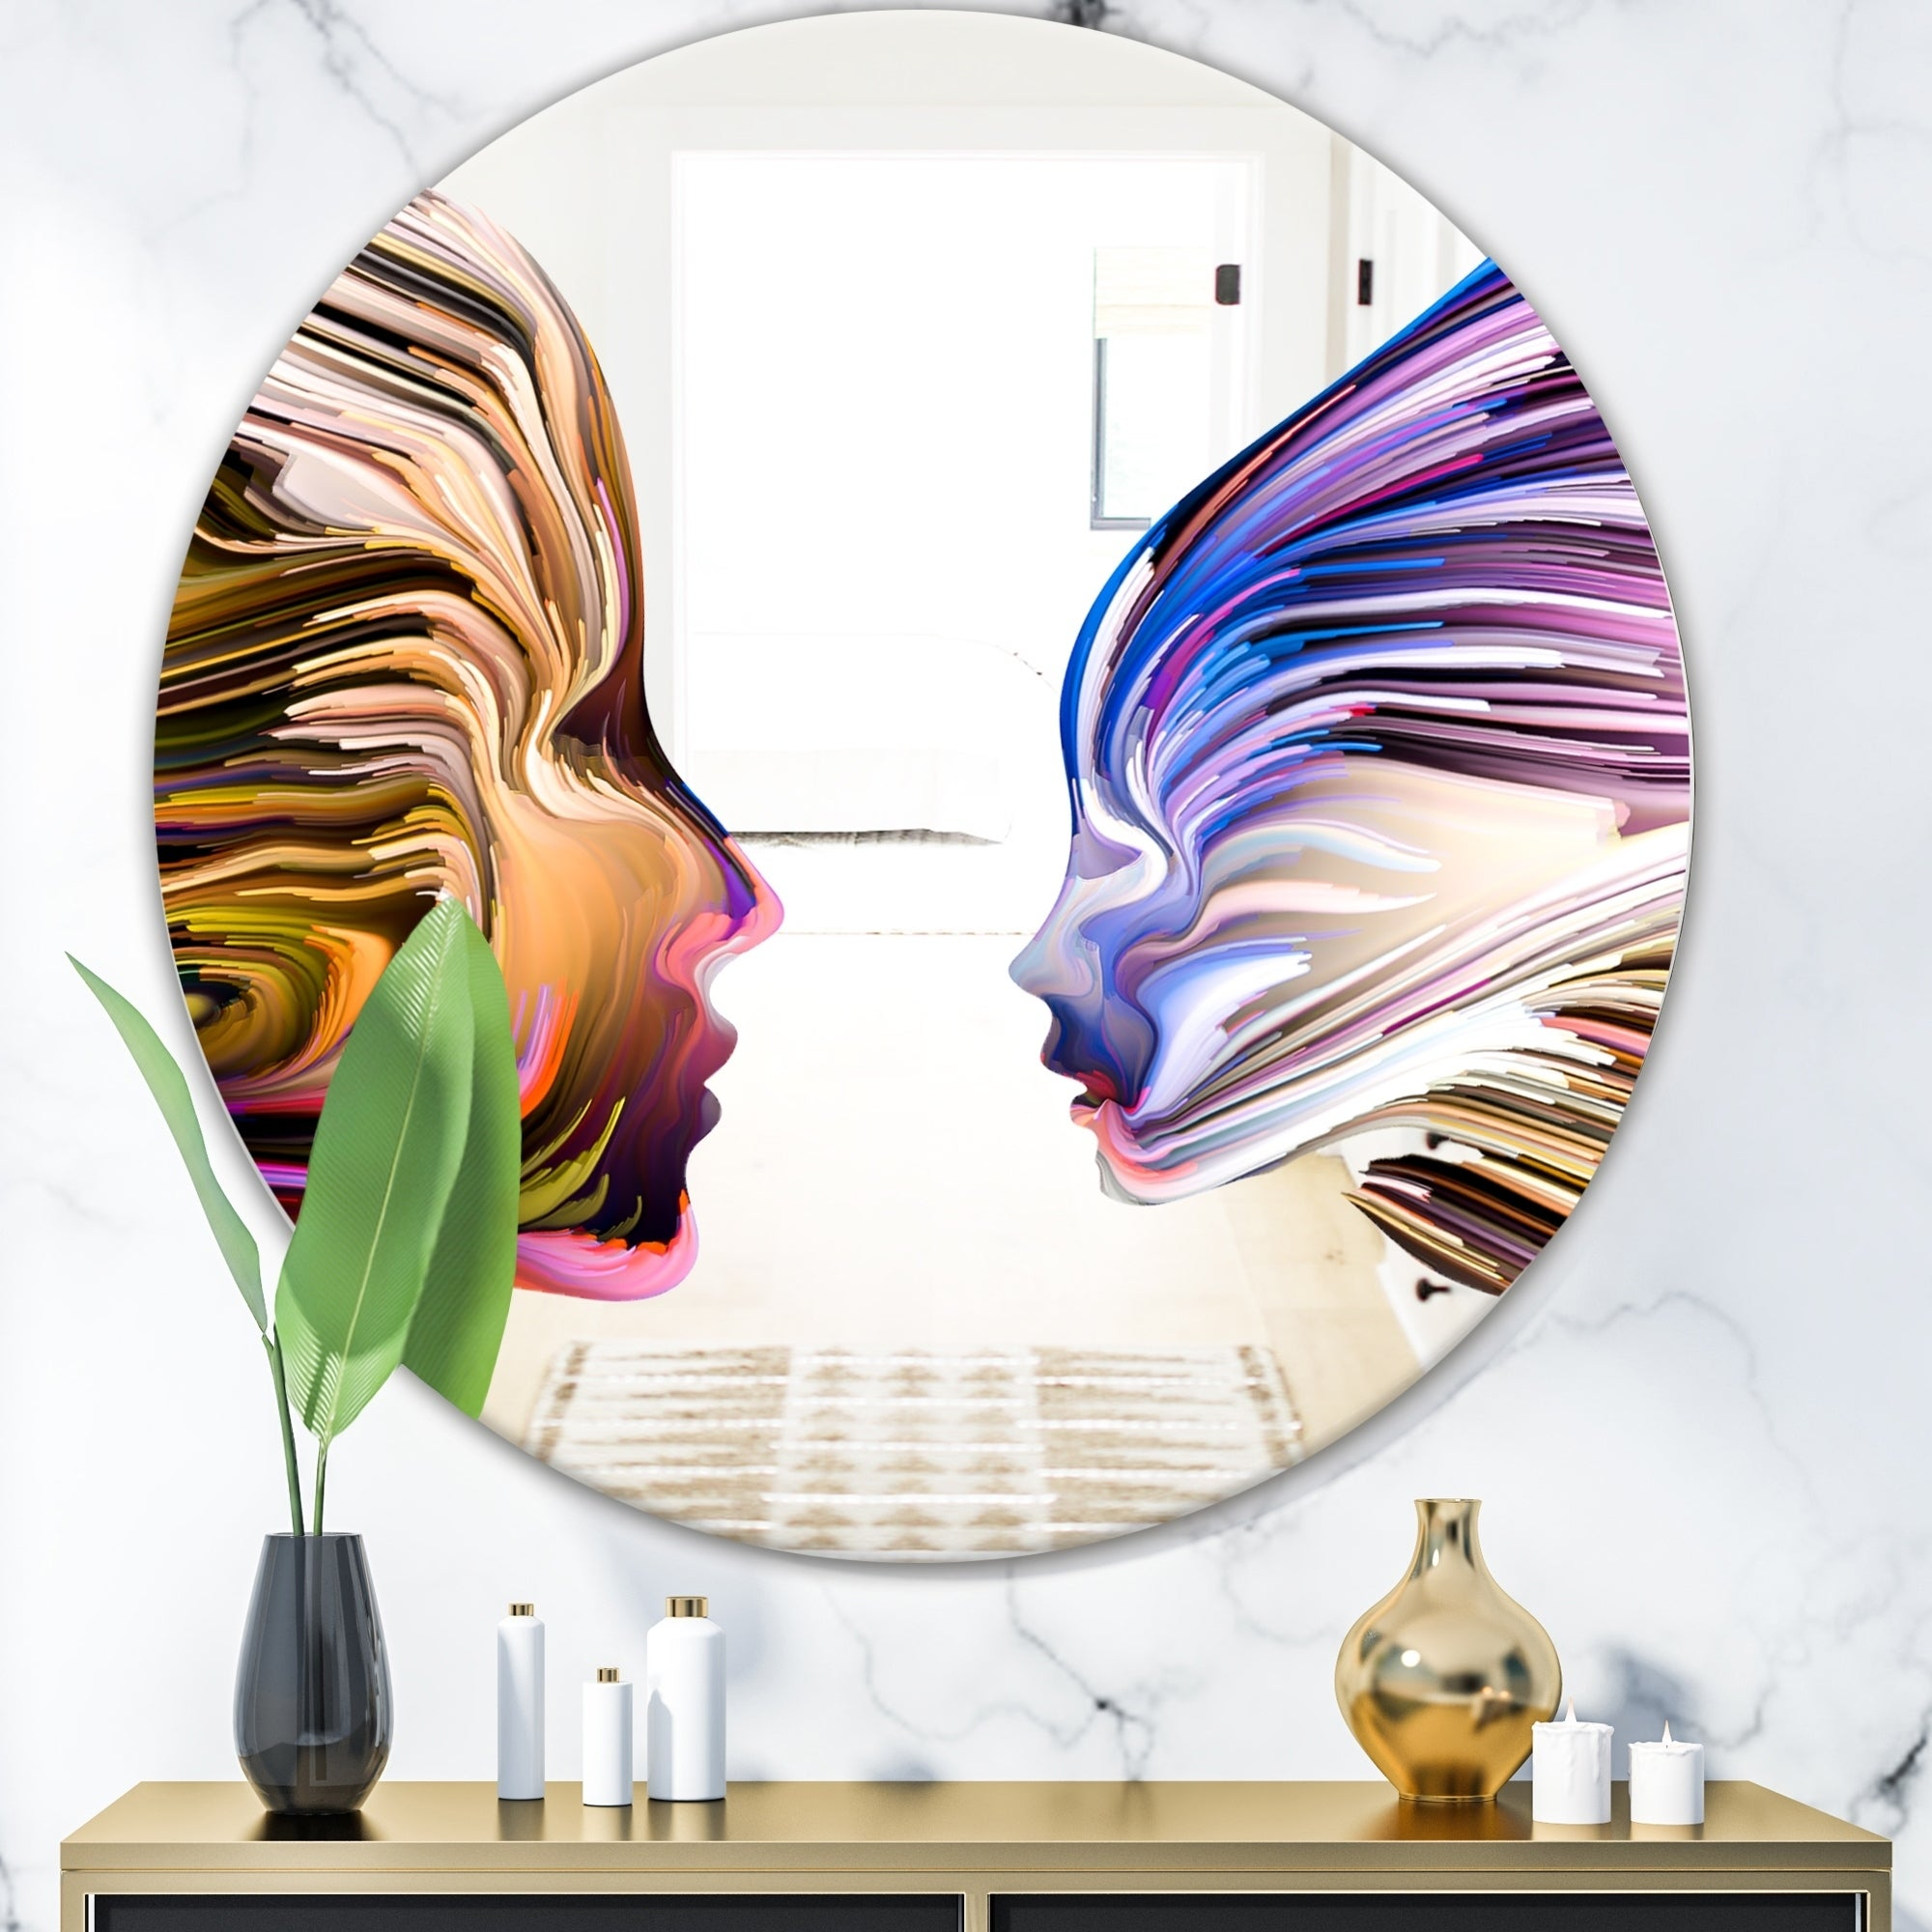 Painting On Mirrors, A New and Artistic Idea